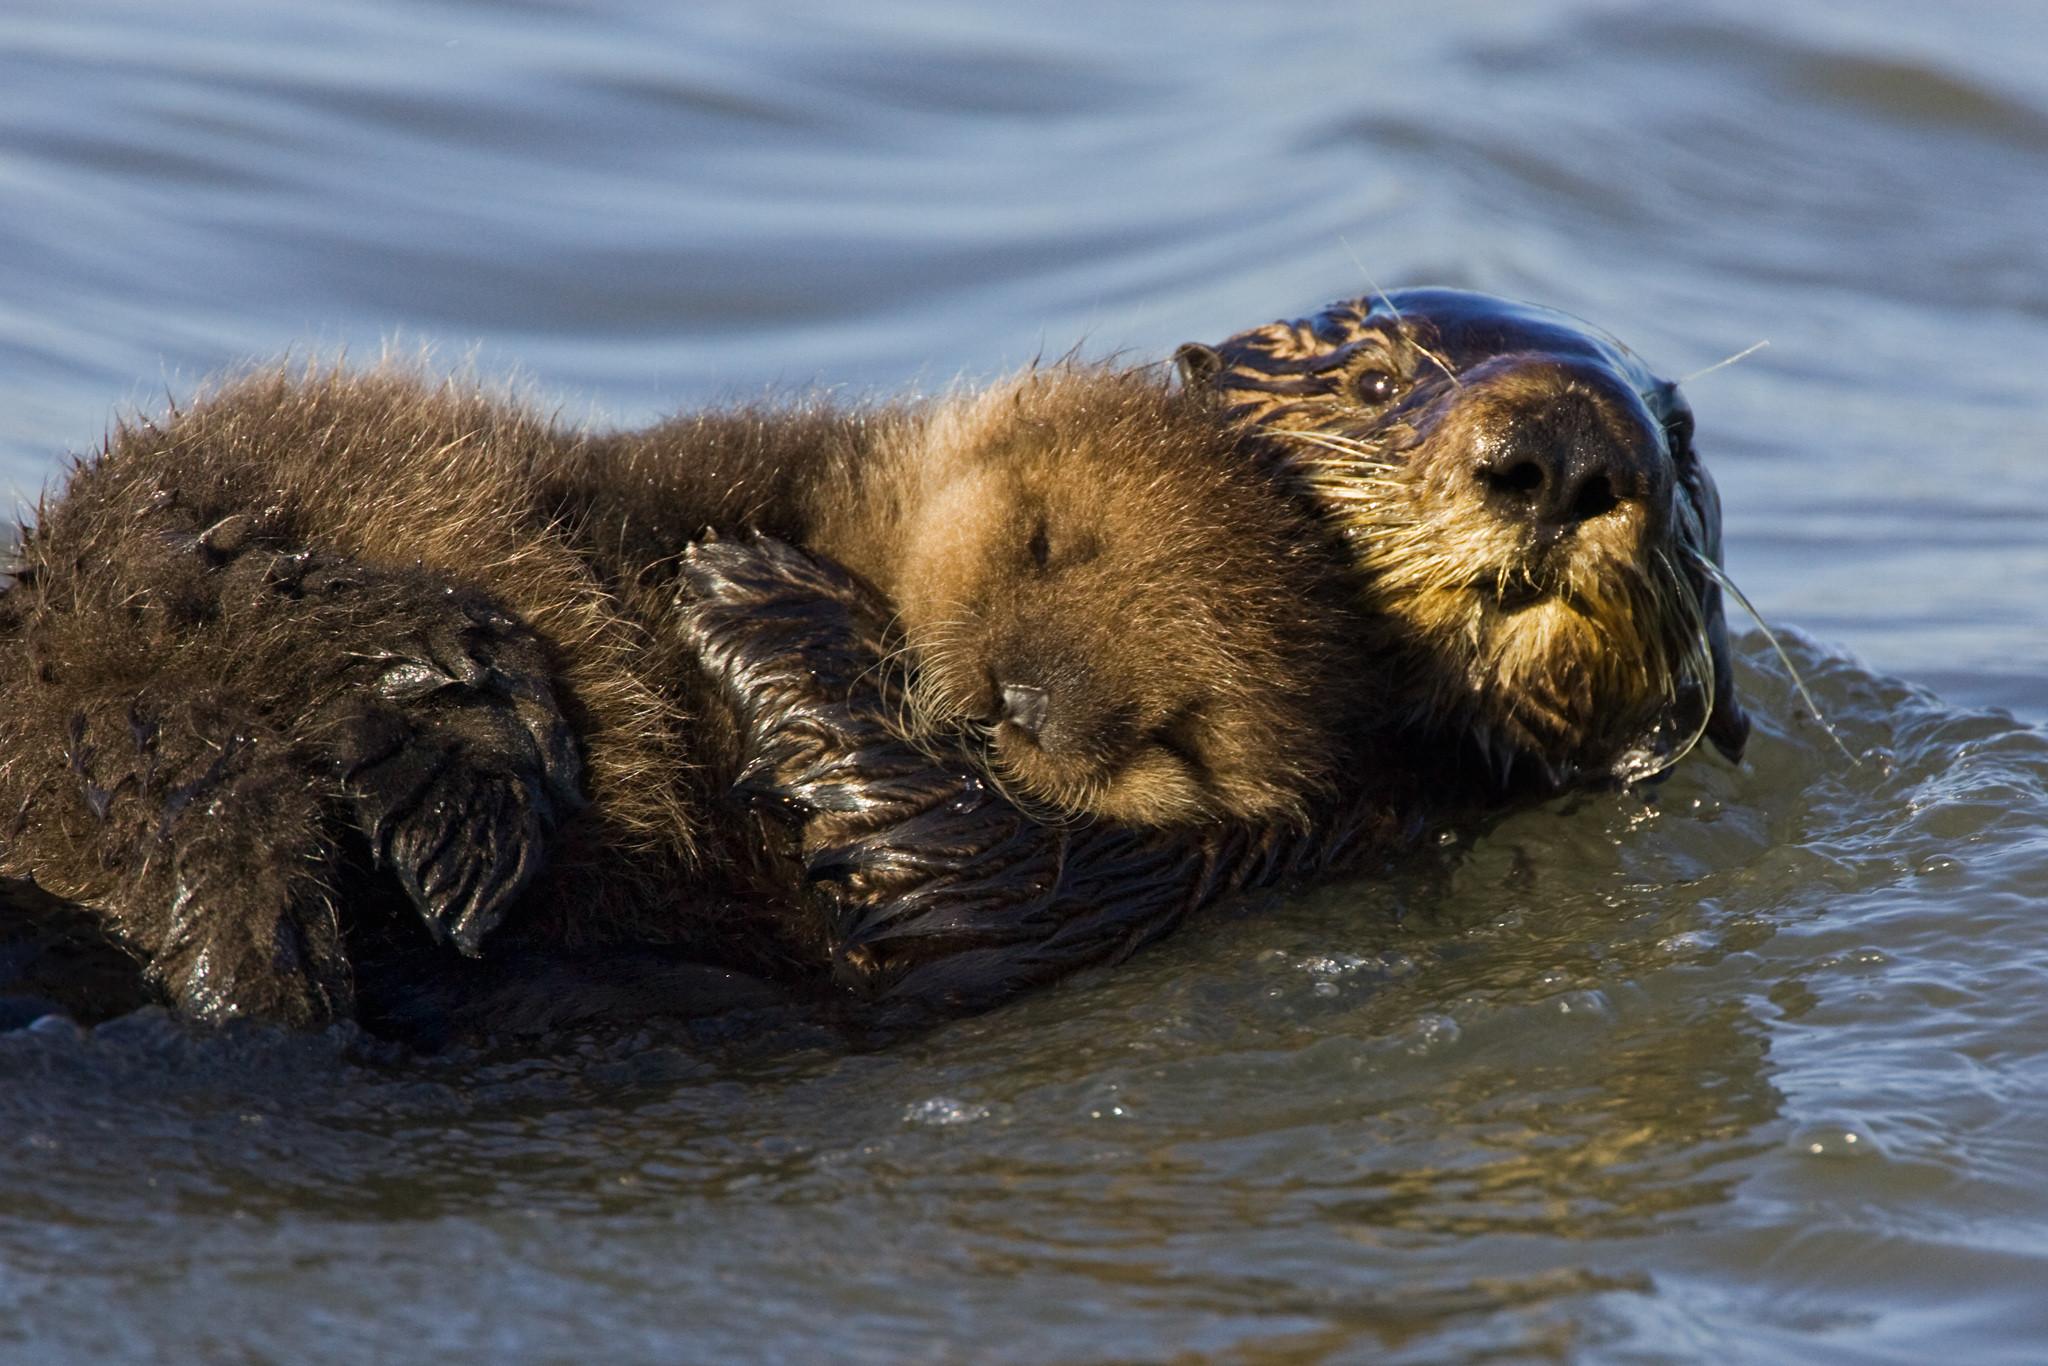 Res: 2048x1366, Sea Otter Moms Risk Lives to Raise Babies